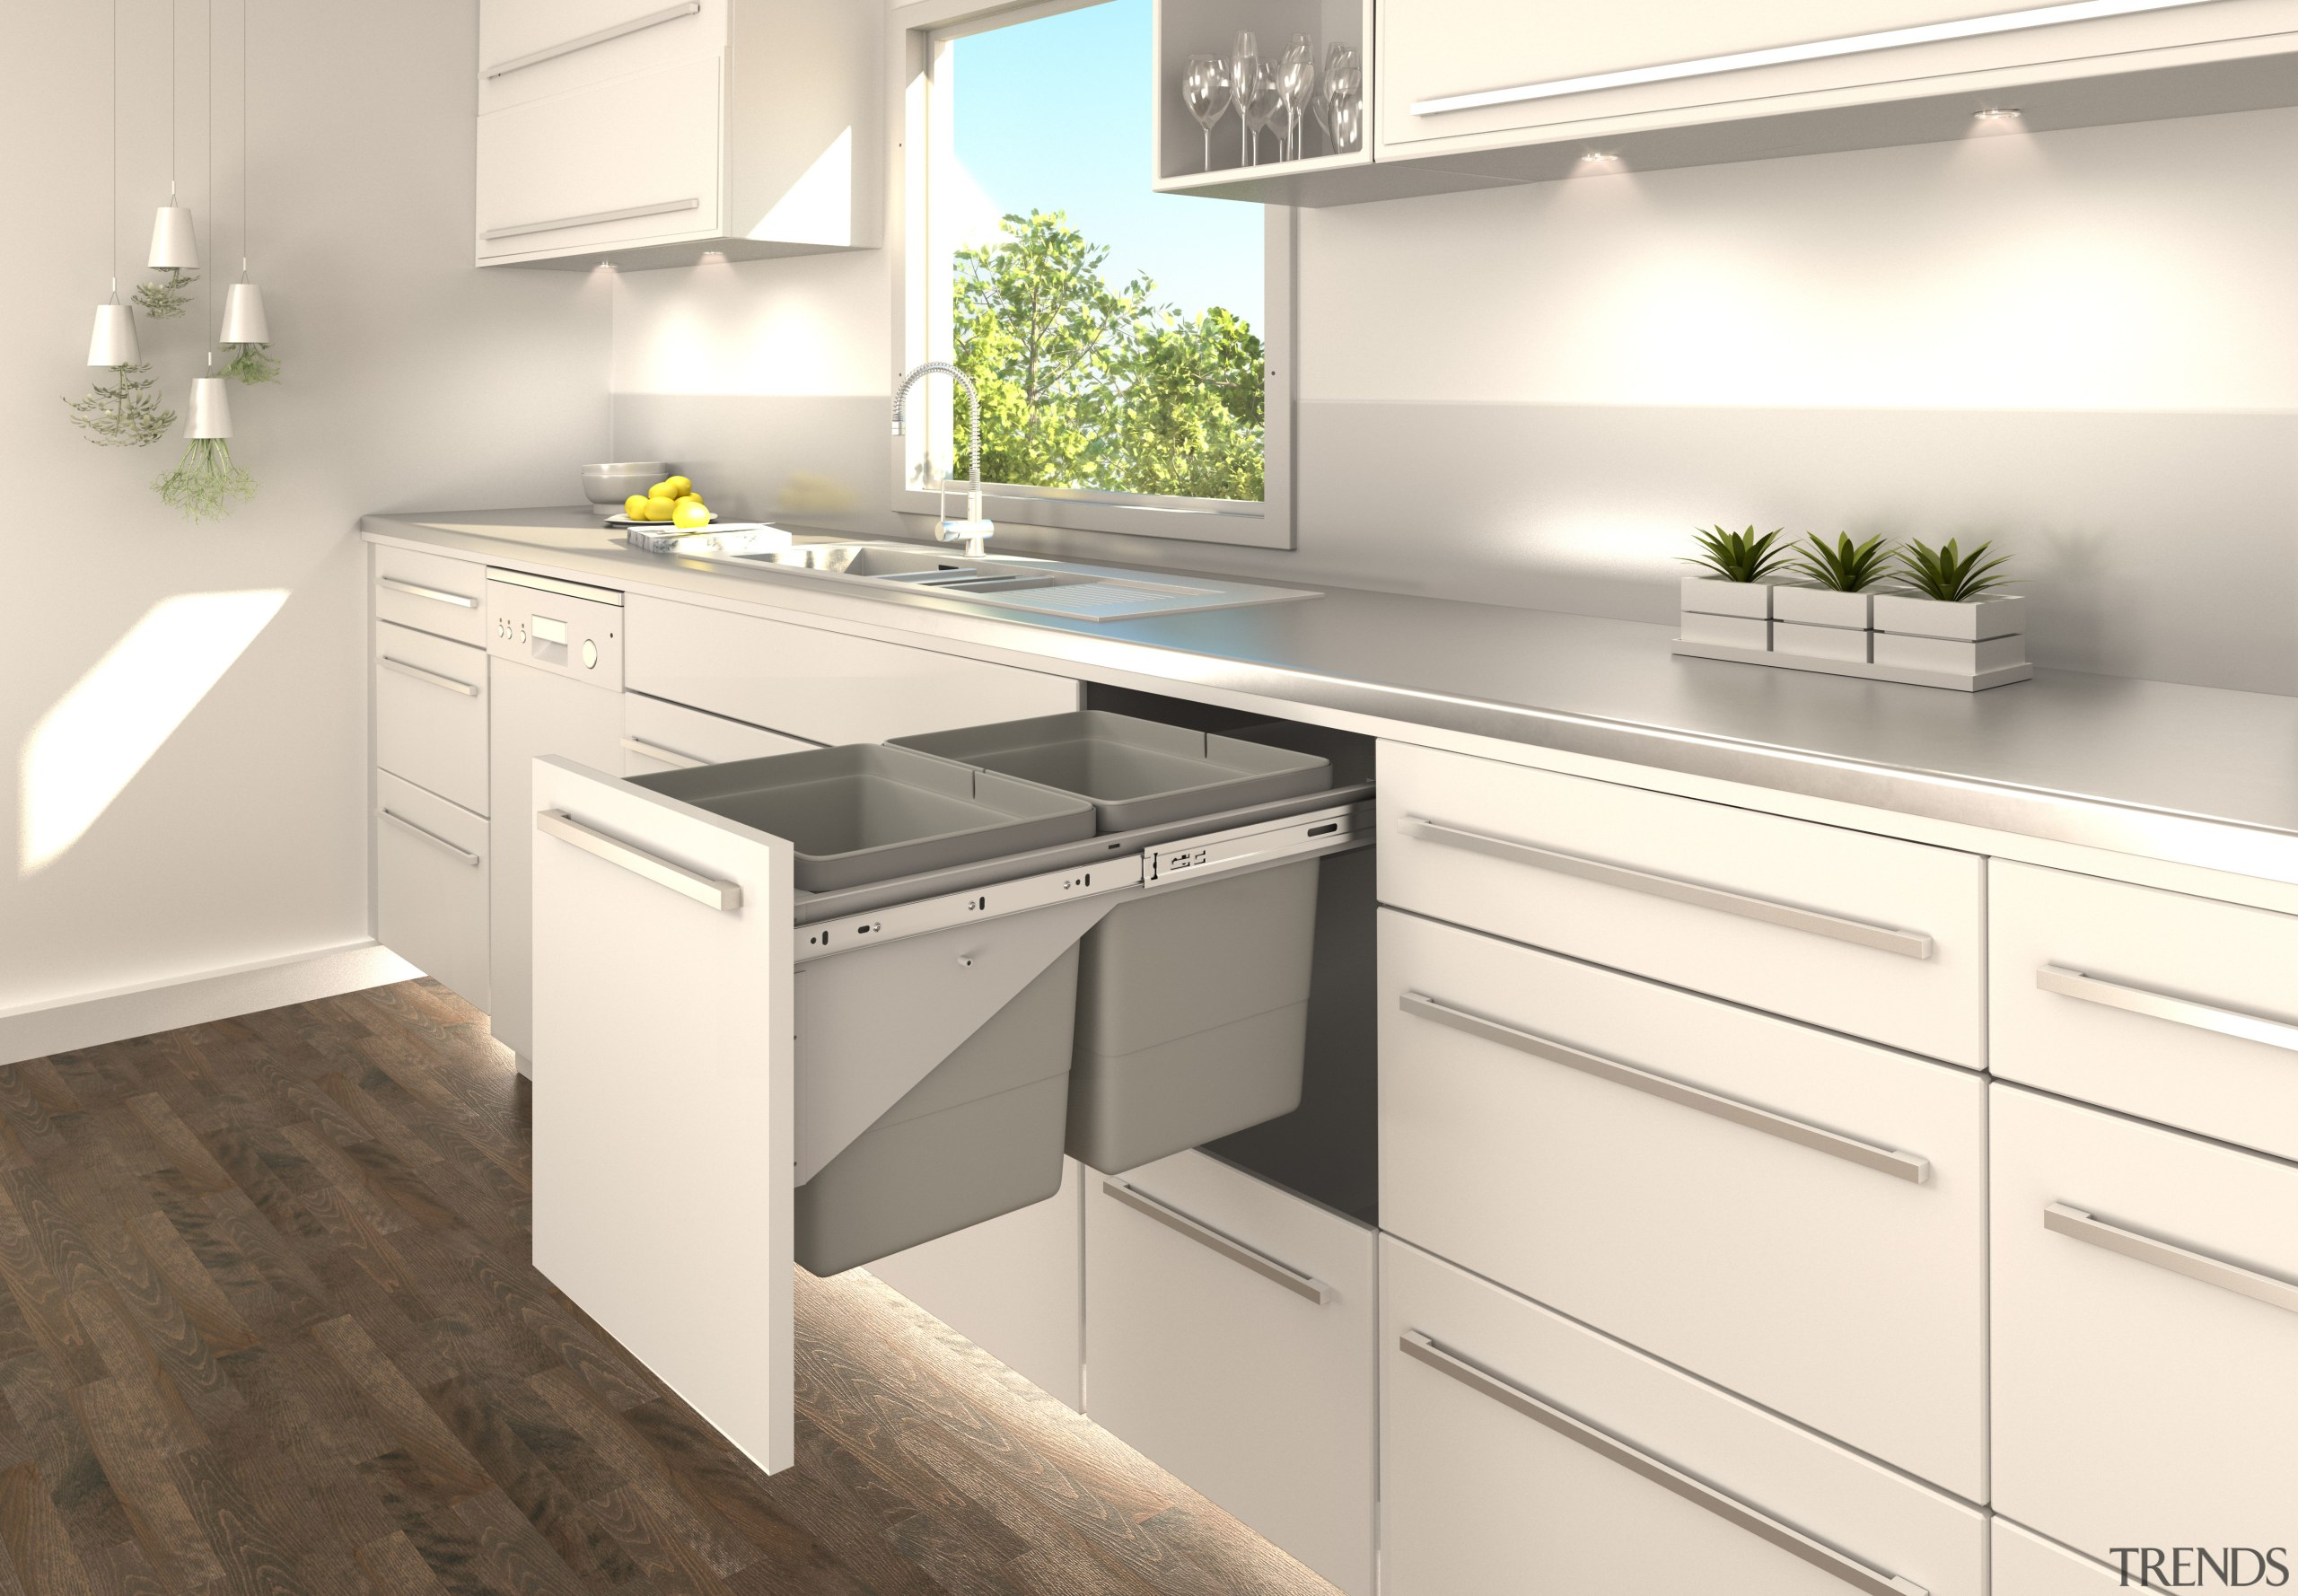 The discrete Tanova systems operate on strong, fully cabinetry, countertop, cuisine classique, interior design, kitchen, product design, white